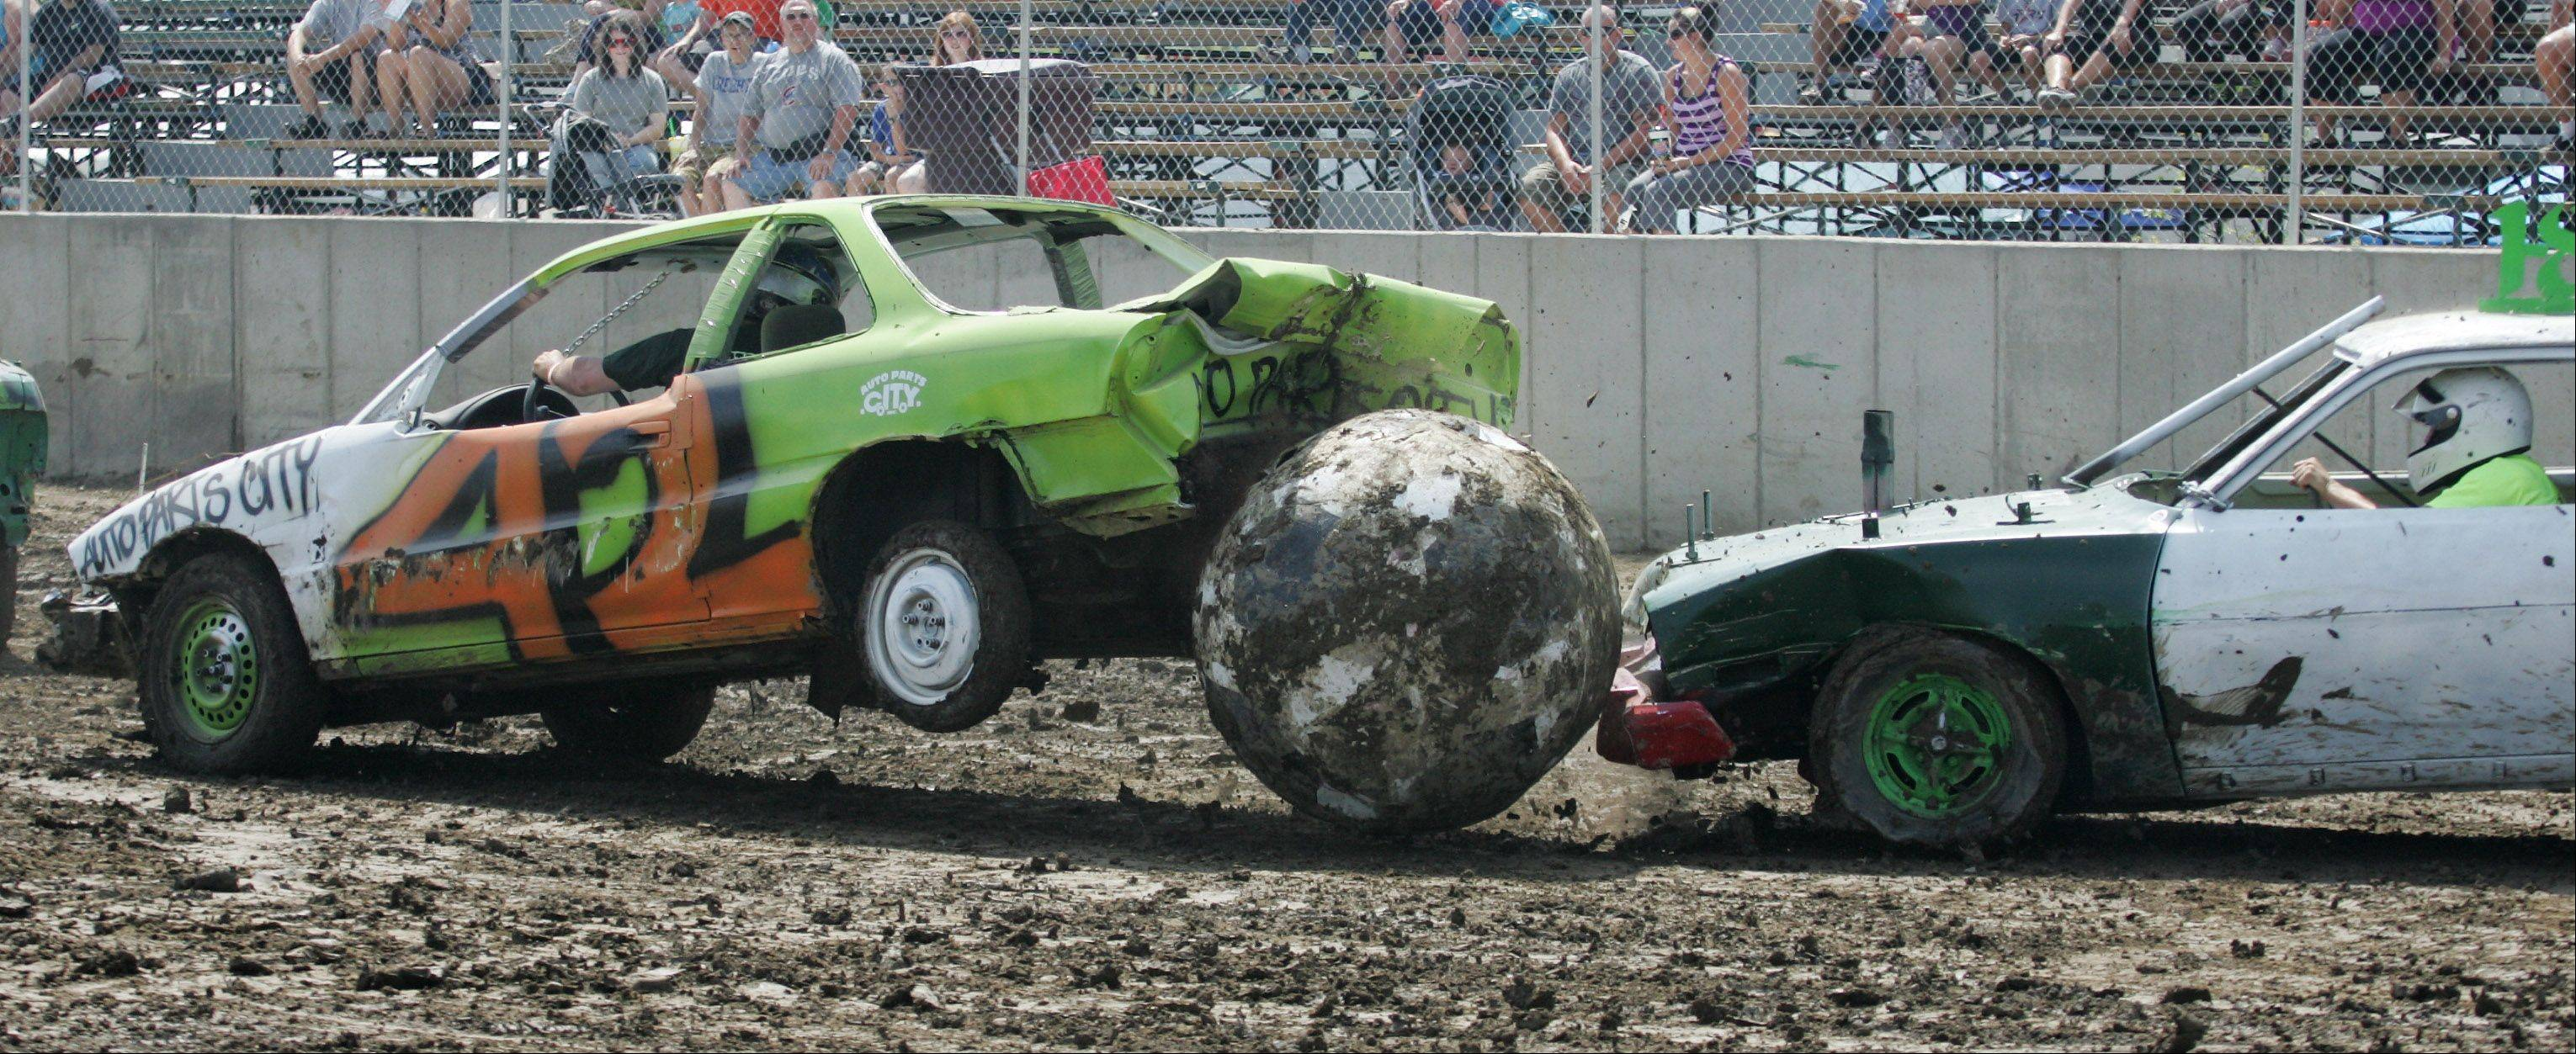 Team USA driver Gary Rogers, left, has his car lifted off the ground as Team Italy driver Scott Redden rams the ball into him during Auto Soccer at the Lake County Fair Sunday in Grayslake. Team USA won the contest 4-0.